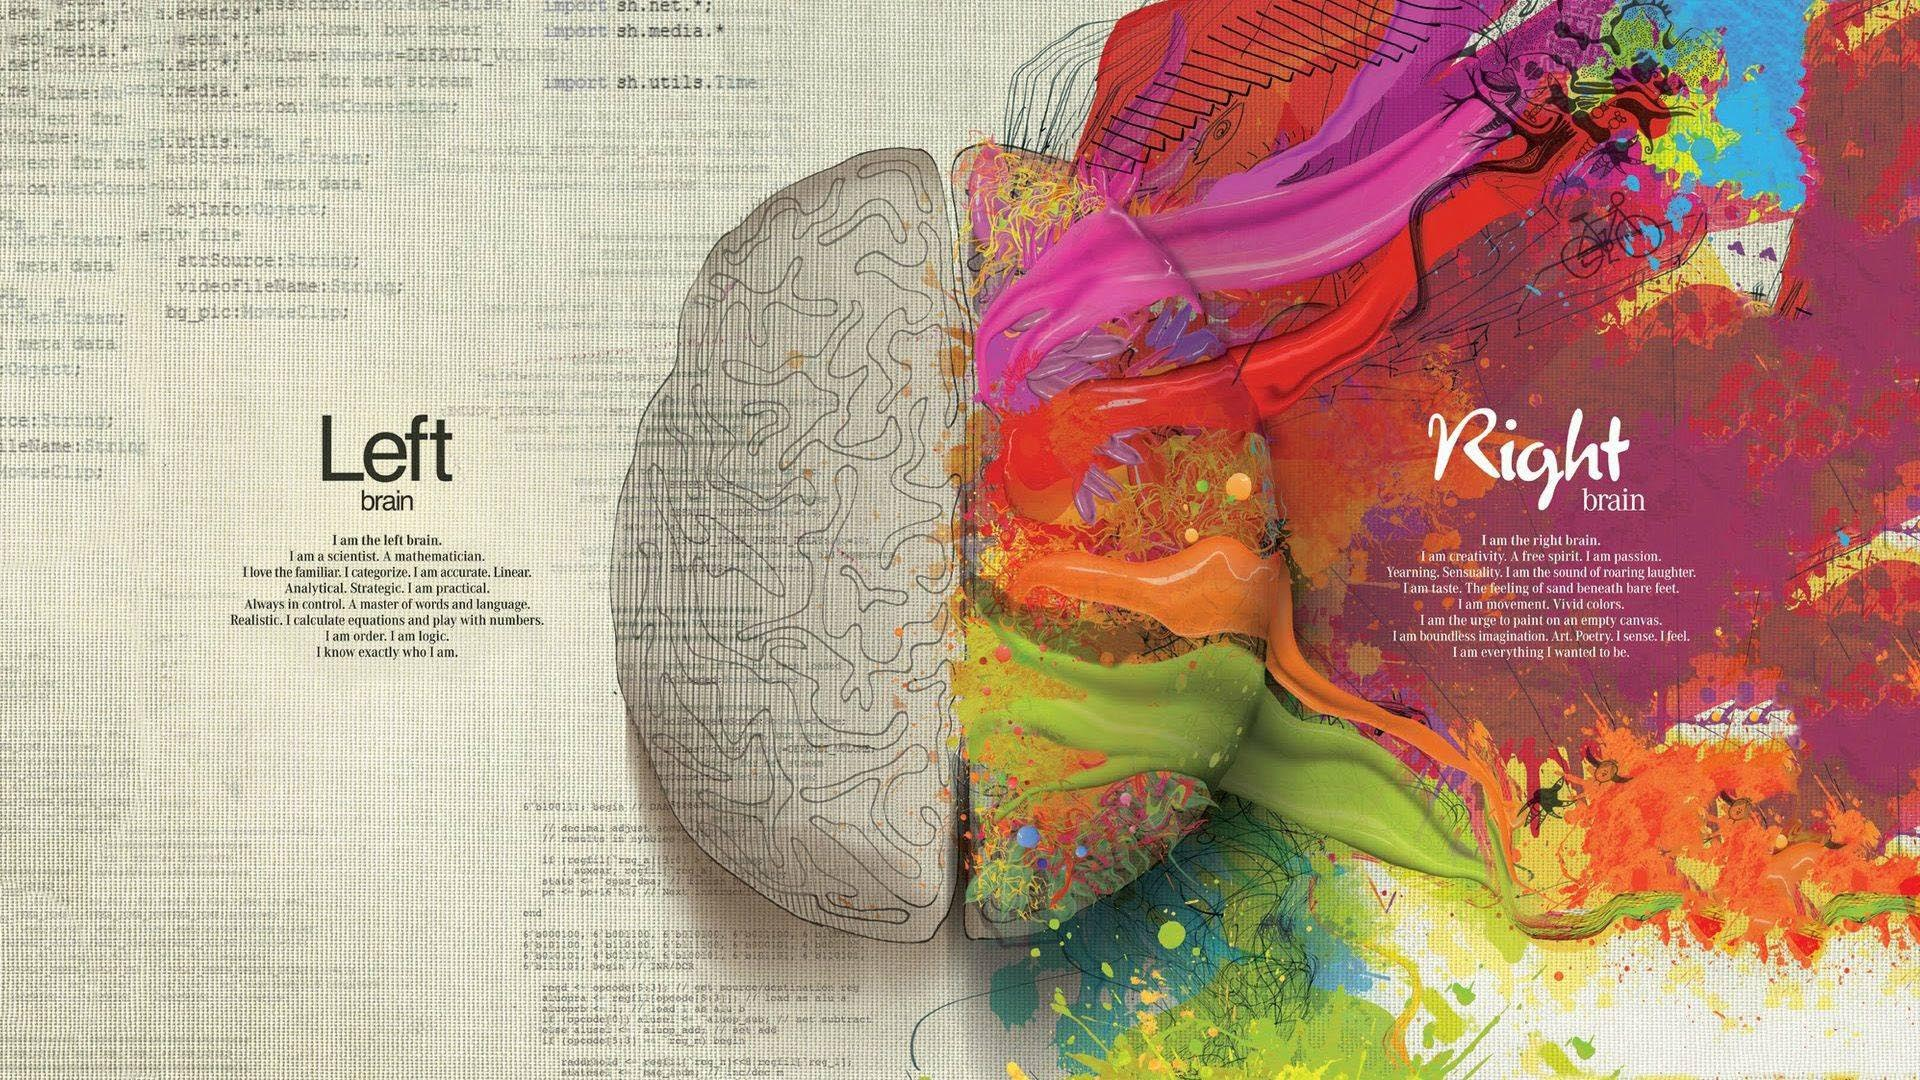 Left and Right Brain HD Wallpapers » FullHDWpp